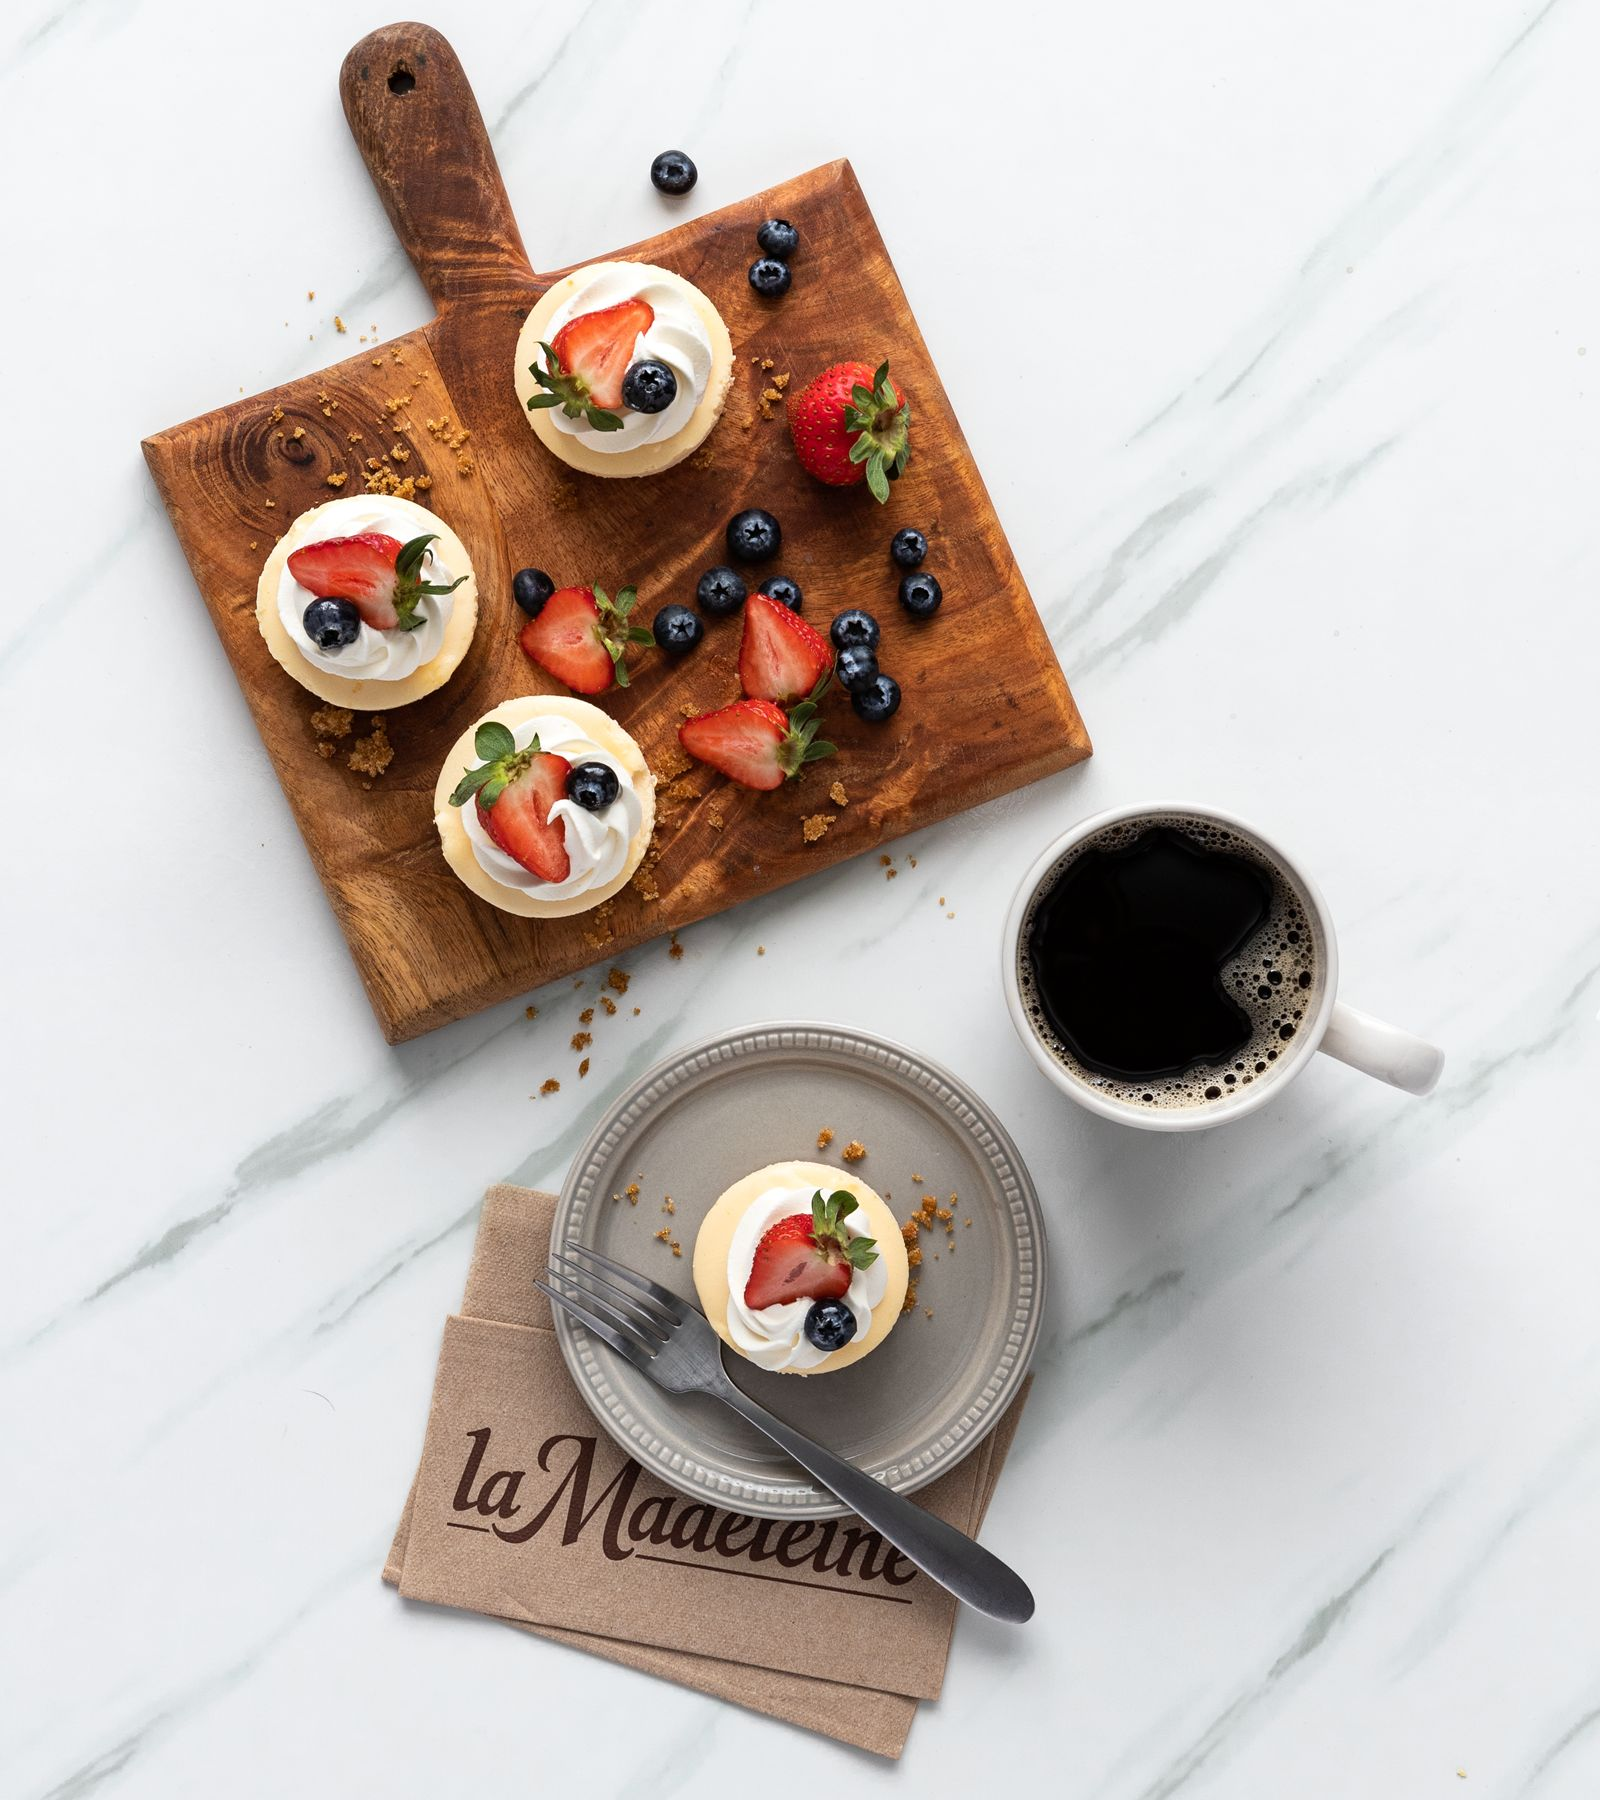 la Madeleine Embraces Spring's Arrival with Debut of New Seasonal Offerings